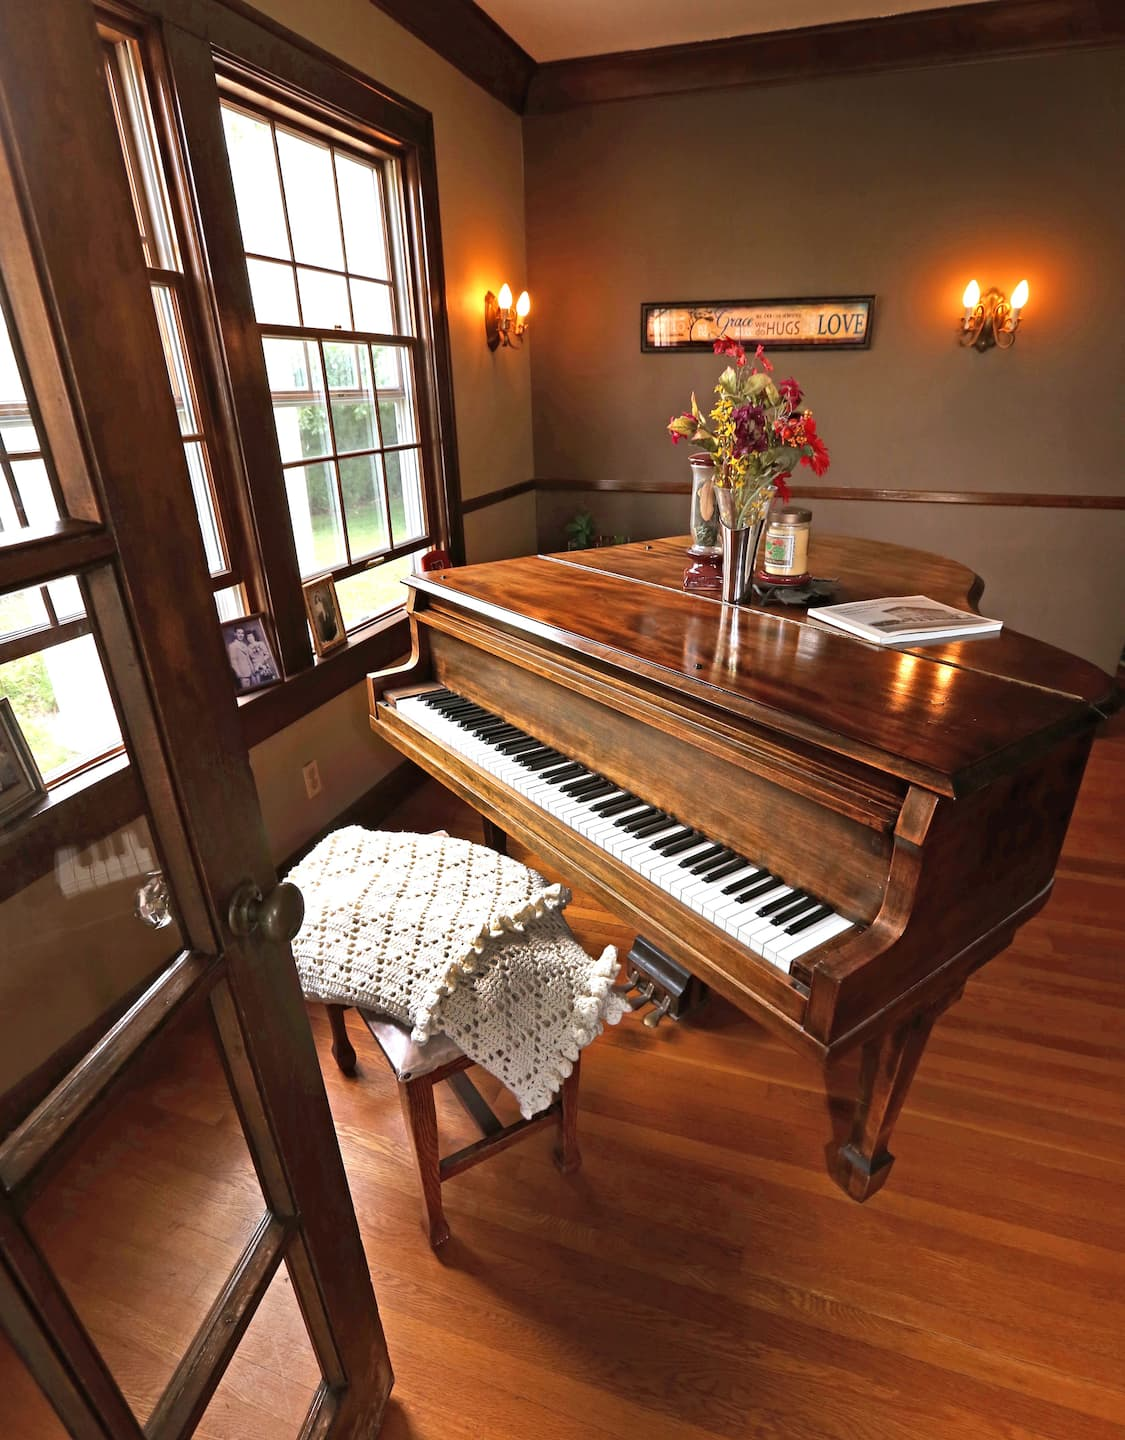 A piano in a home